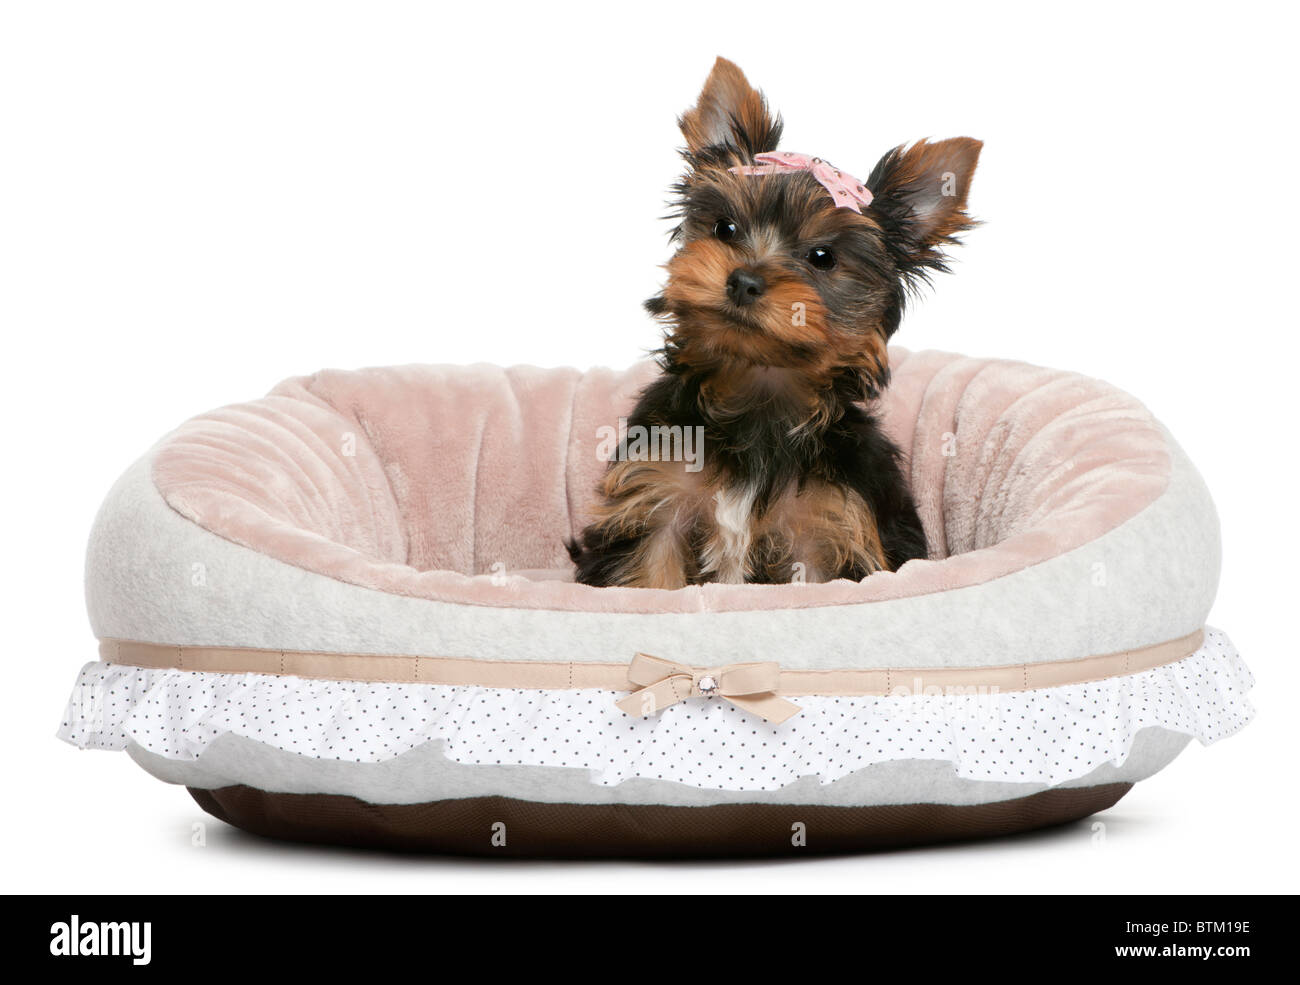 Yorkshire Terrier puppy, 2 months old, sitting in front of white background - Stock Image